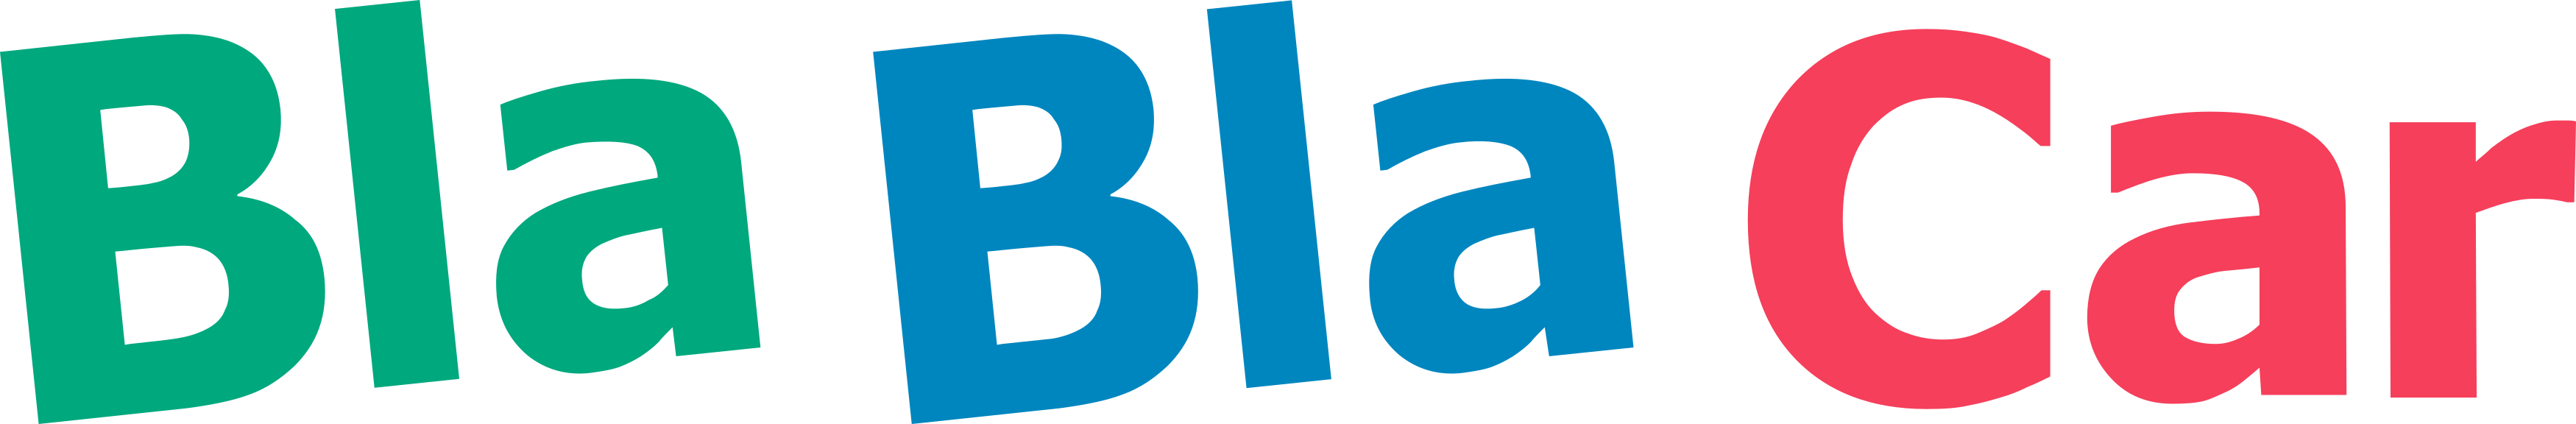 Bla Bla Car logo.